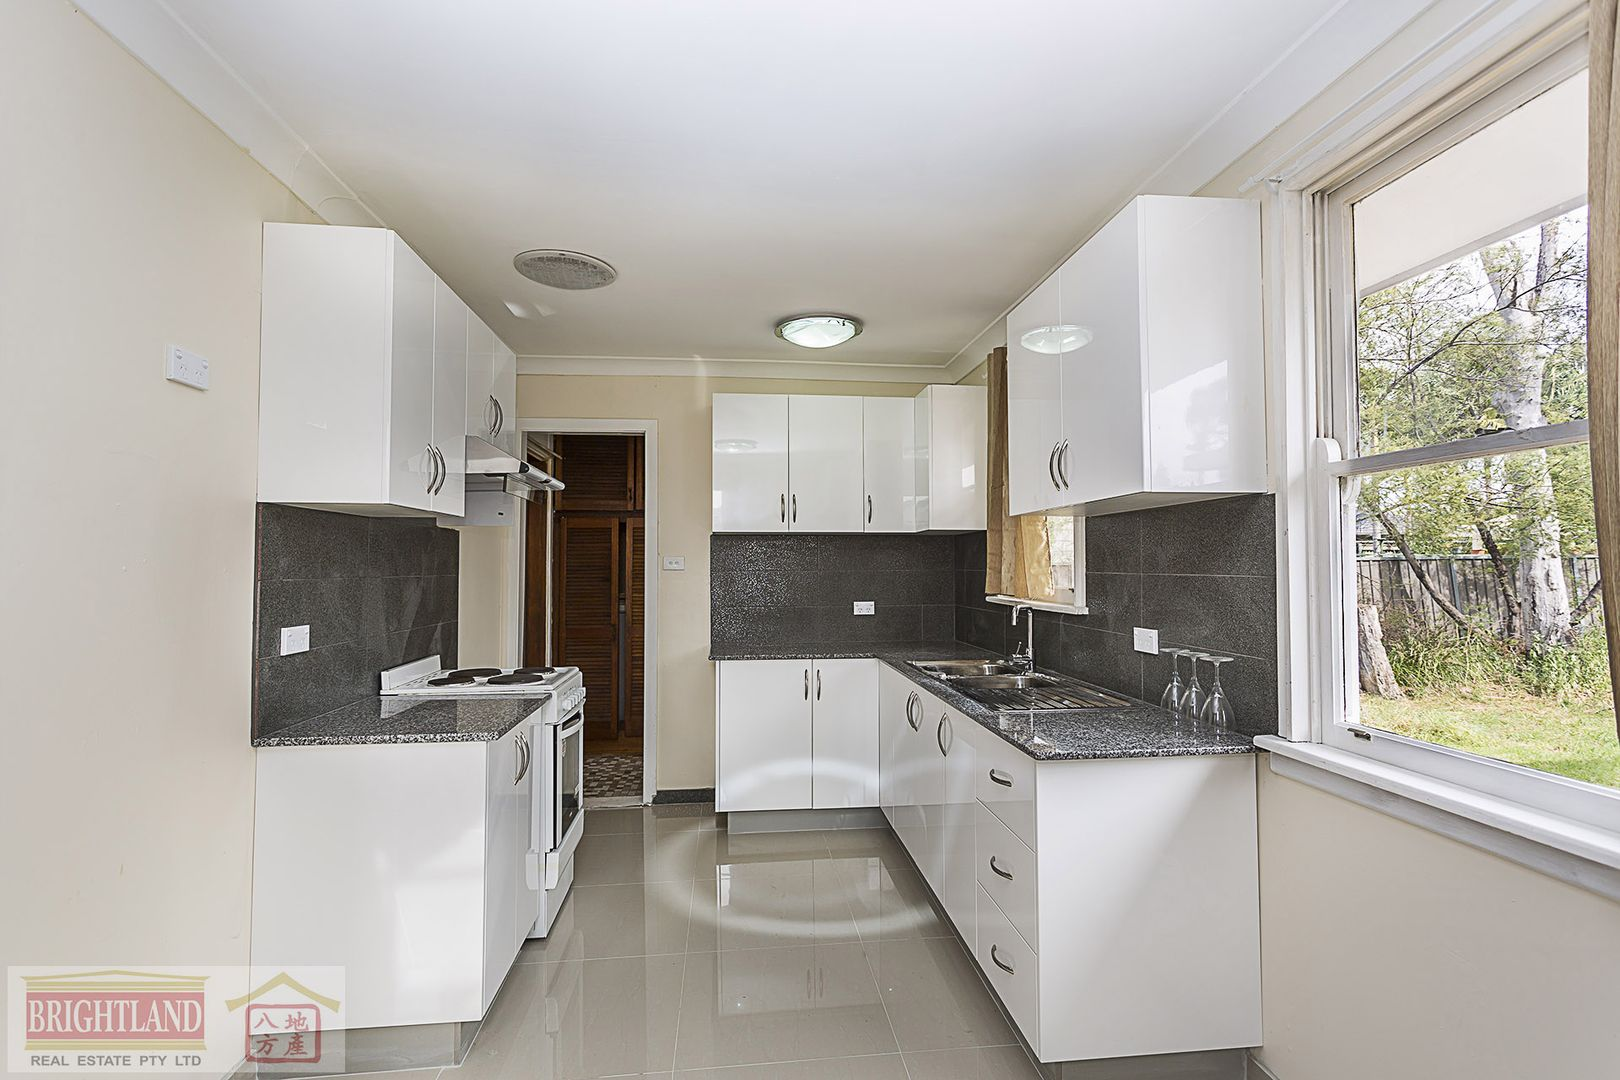 12 Griffiths St, North St Marys NSW 2760, Image 0